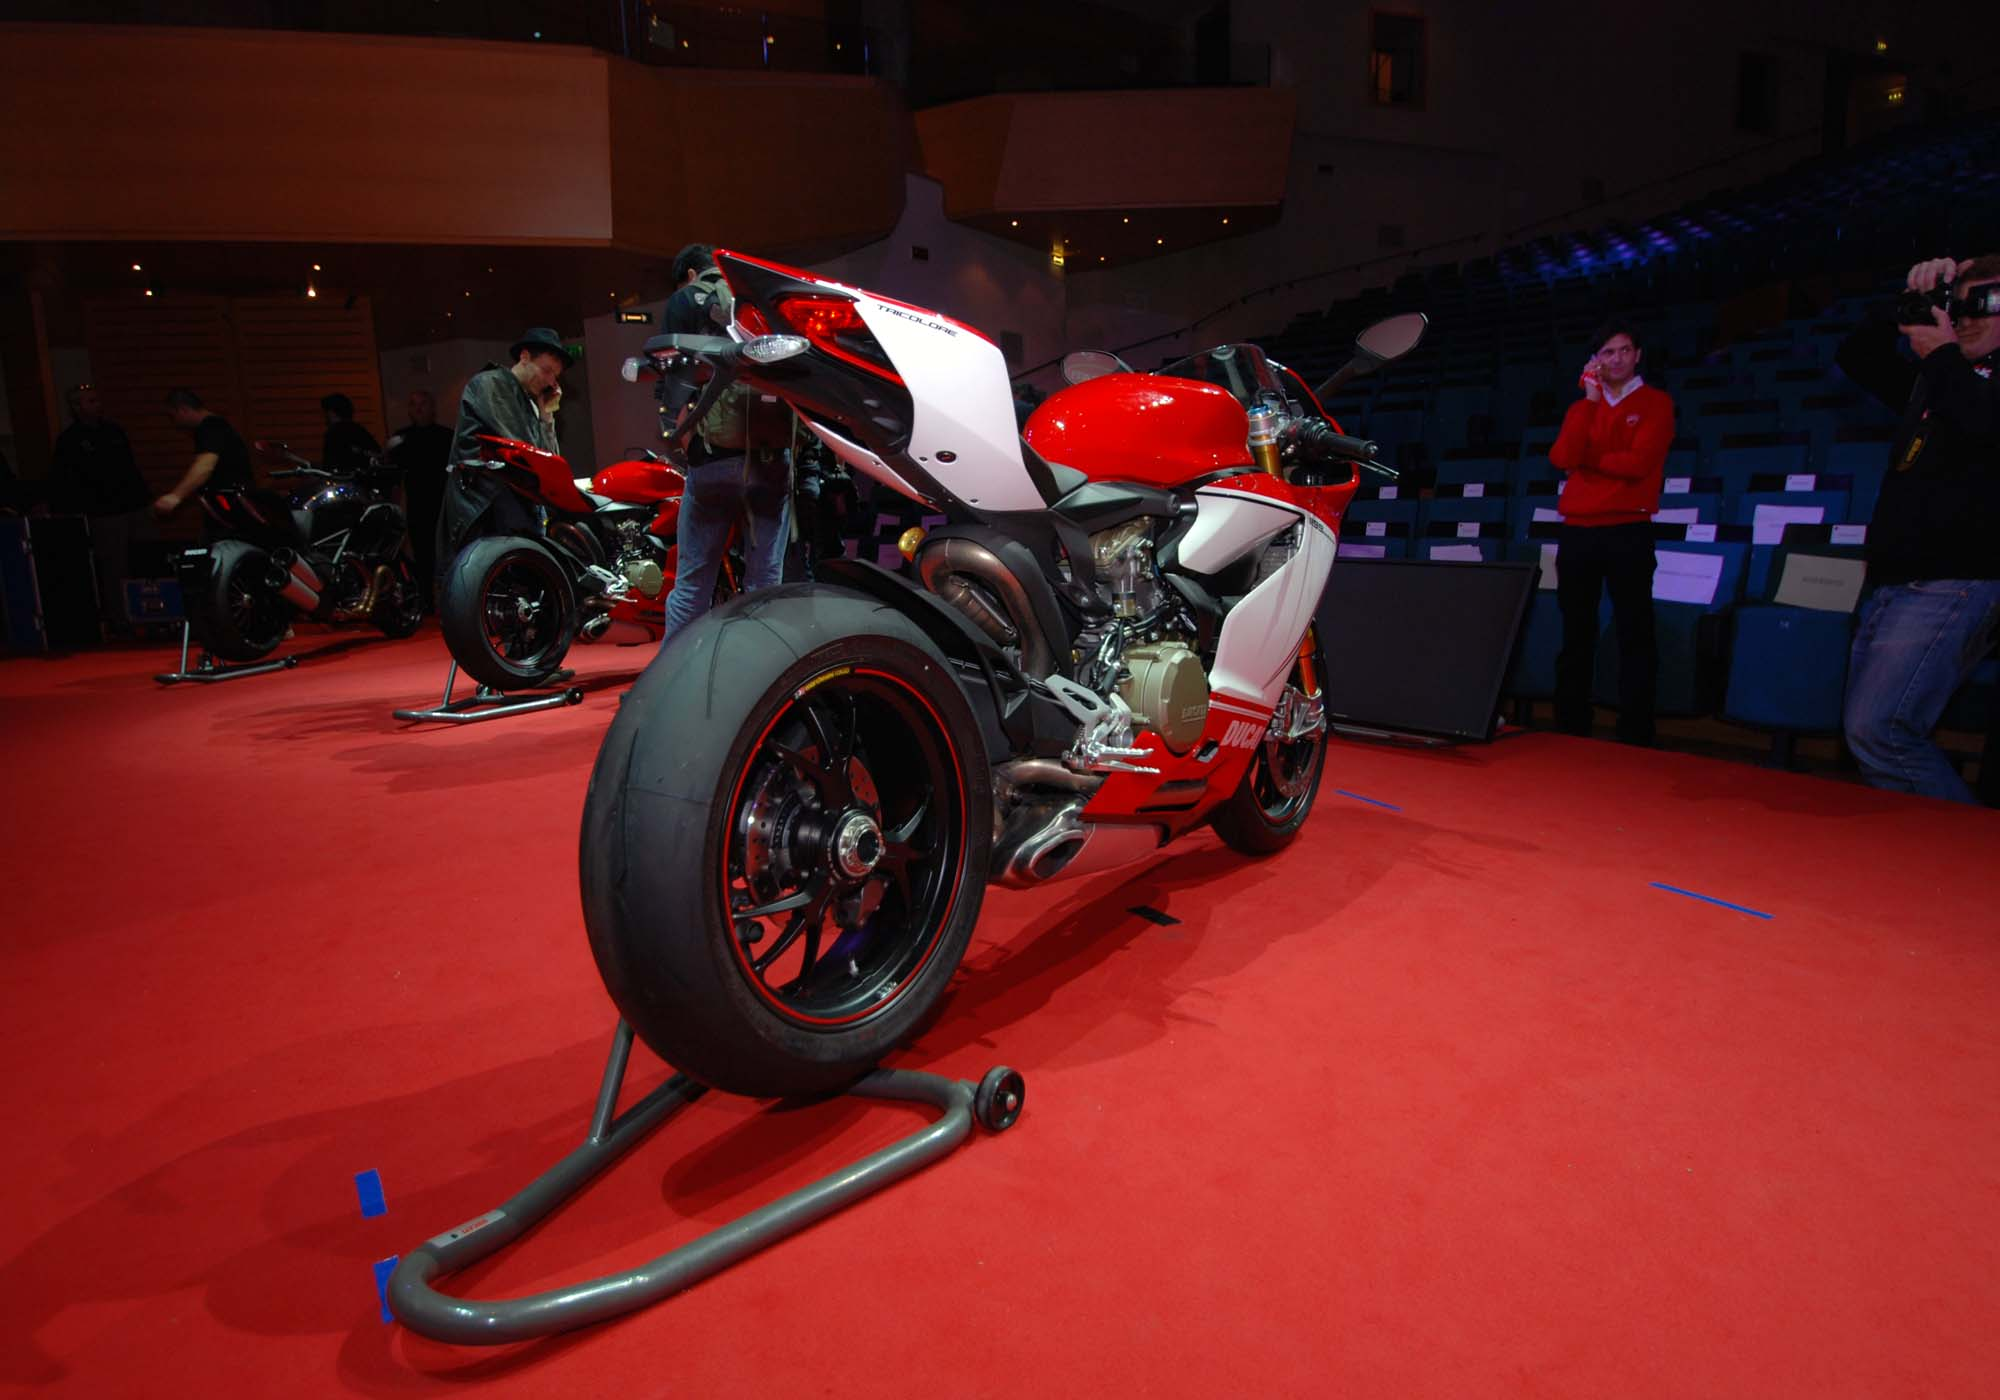 Up-Close with the Ducati 1199 Panigale S Tricolore - Asphalt & Rubber